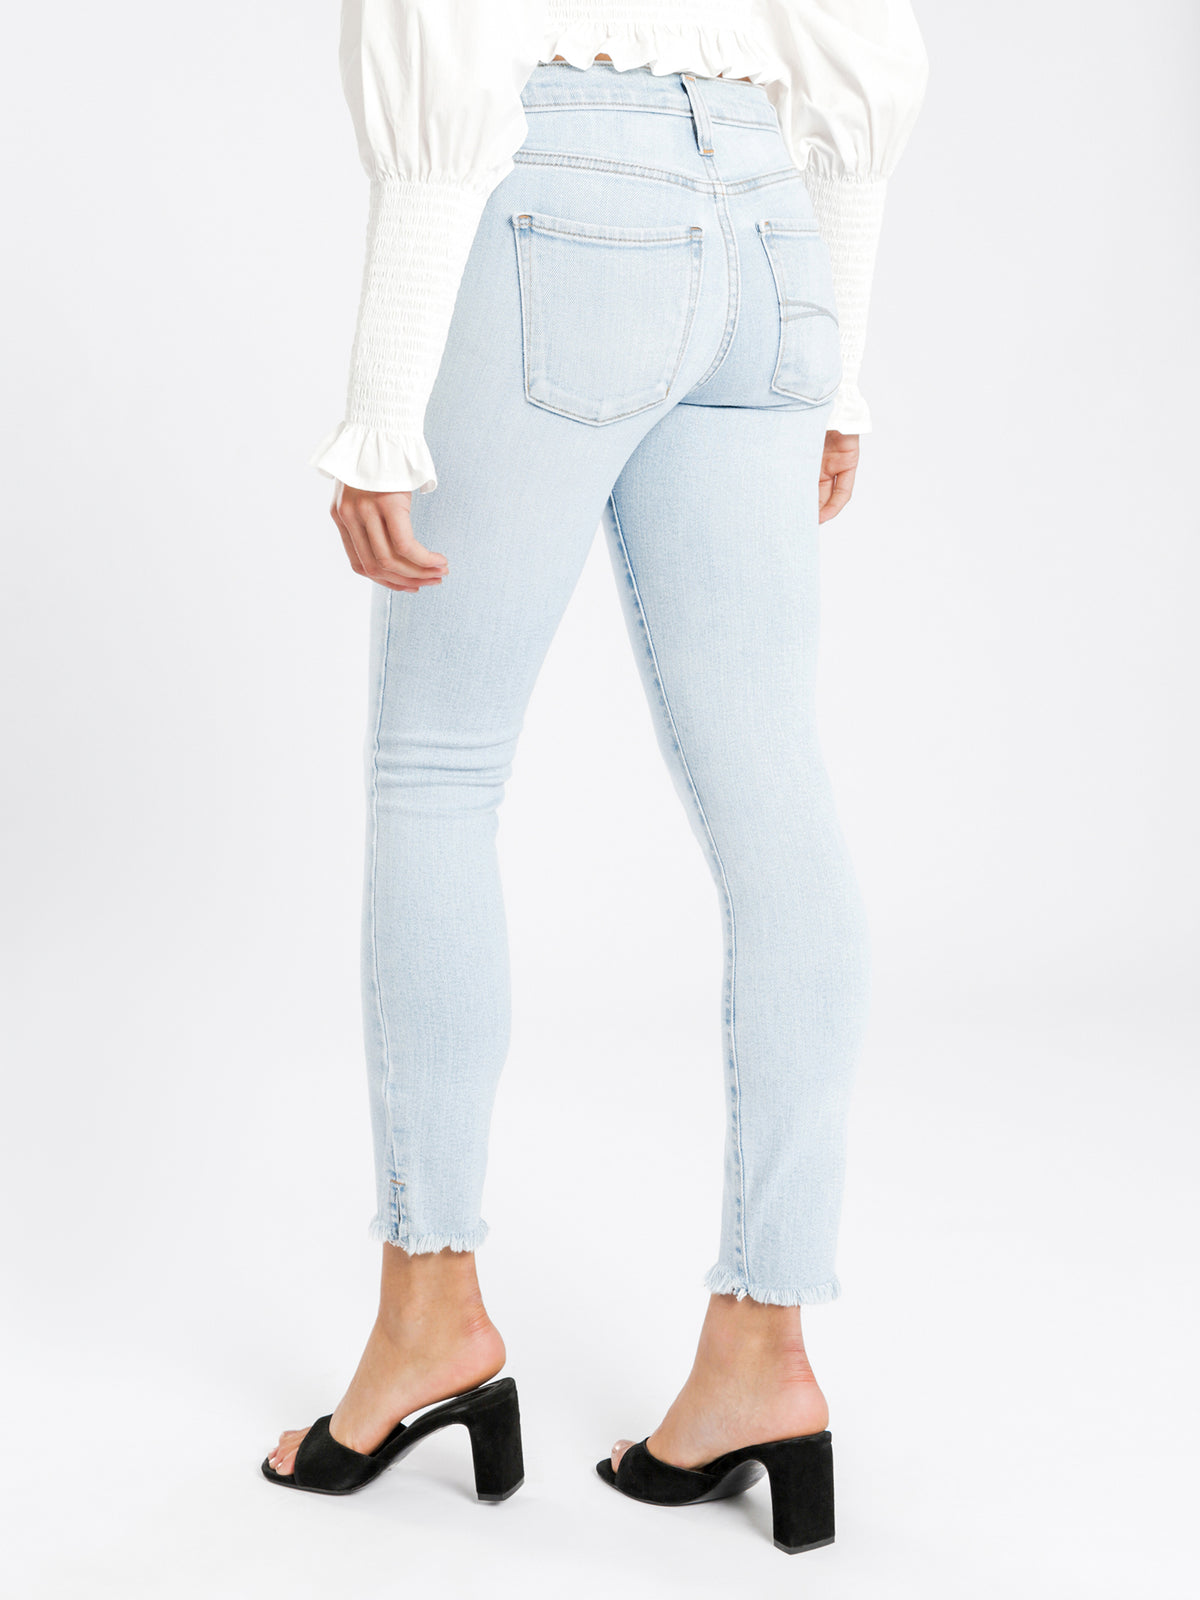 Geo Mid-Rise Skinny Ankle Jeans in Light Authentic Blue Denim